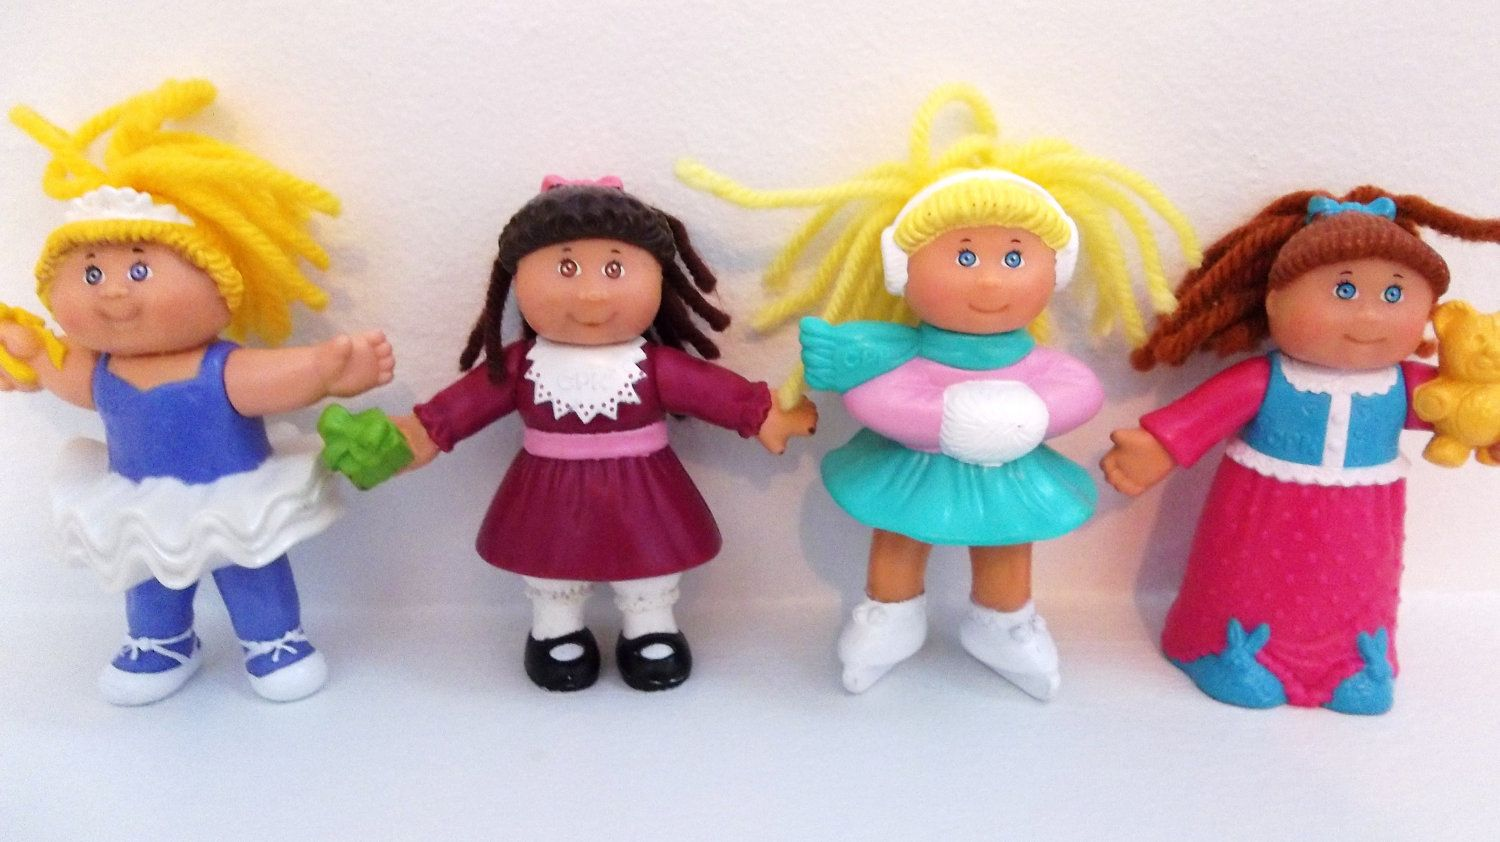 Cabbage Patch Kids Doll Figurines Set Of 4 1992 Etsy Cabbage Patch Kids Dolls Cabbage Patch Kids Cabbage Patch